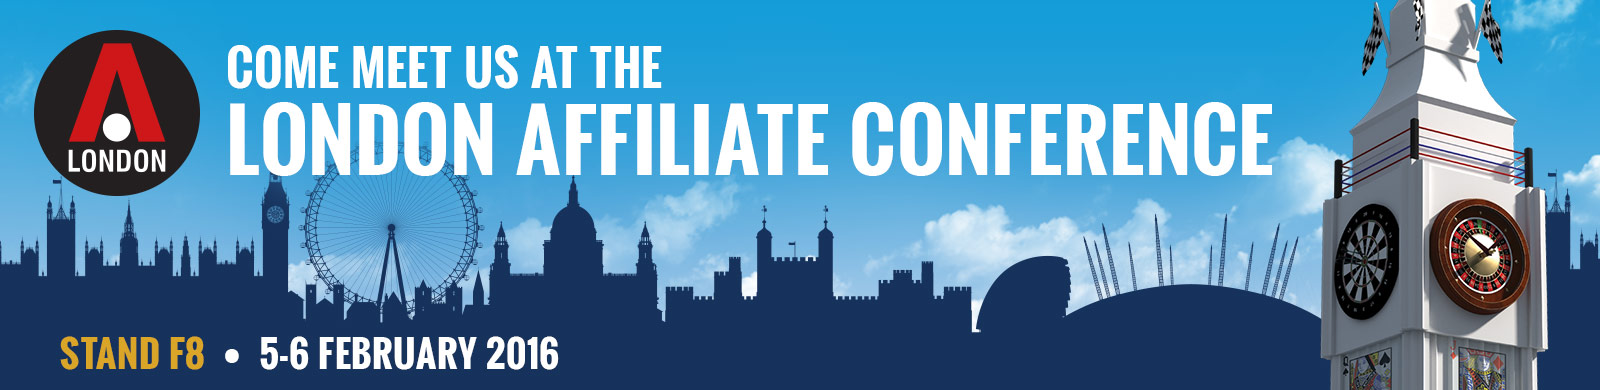 Come meet us at the London affiliate conference Stand F8 5-6 February 2016